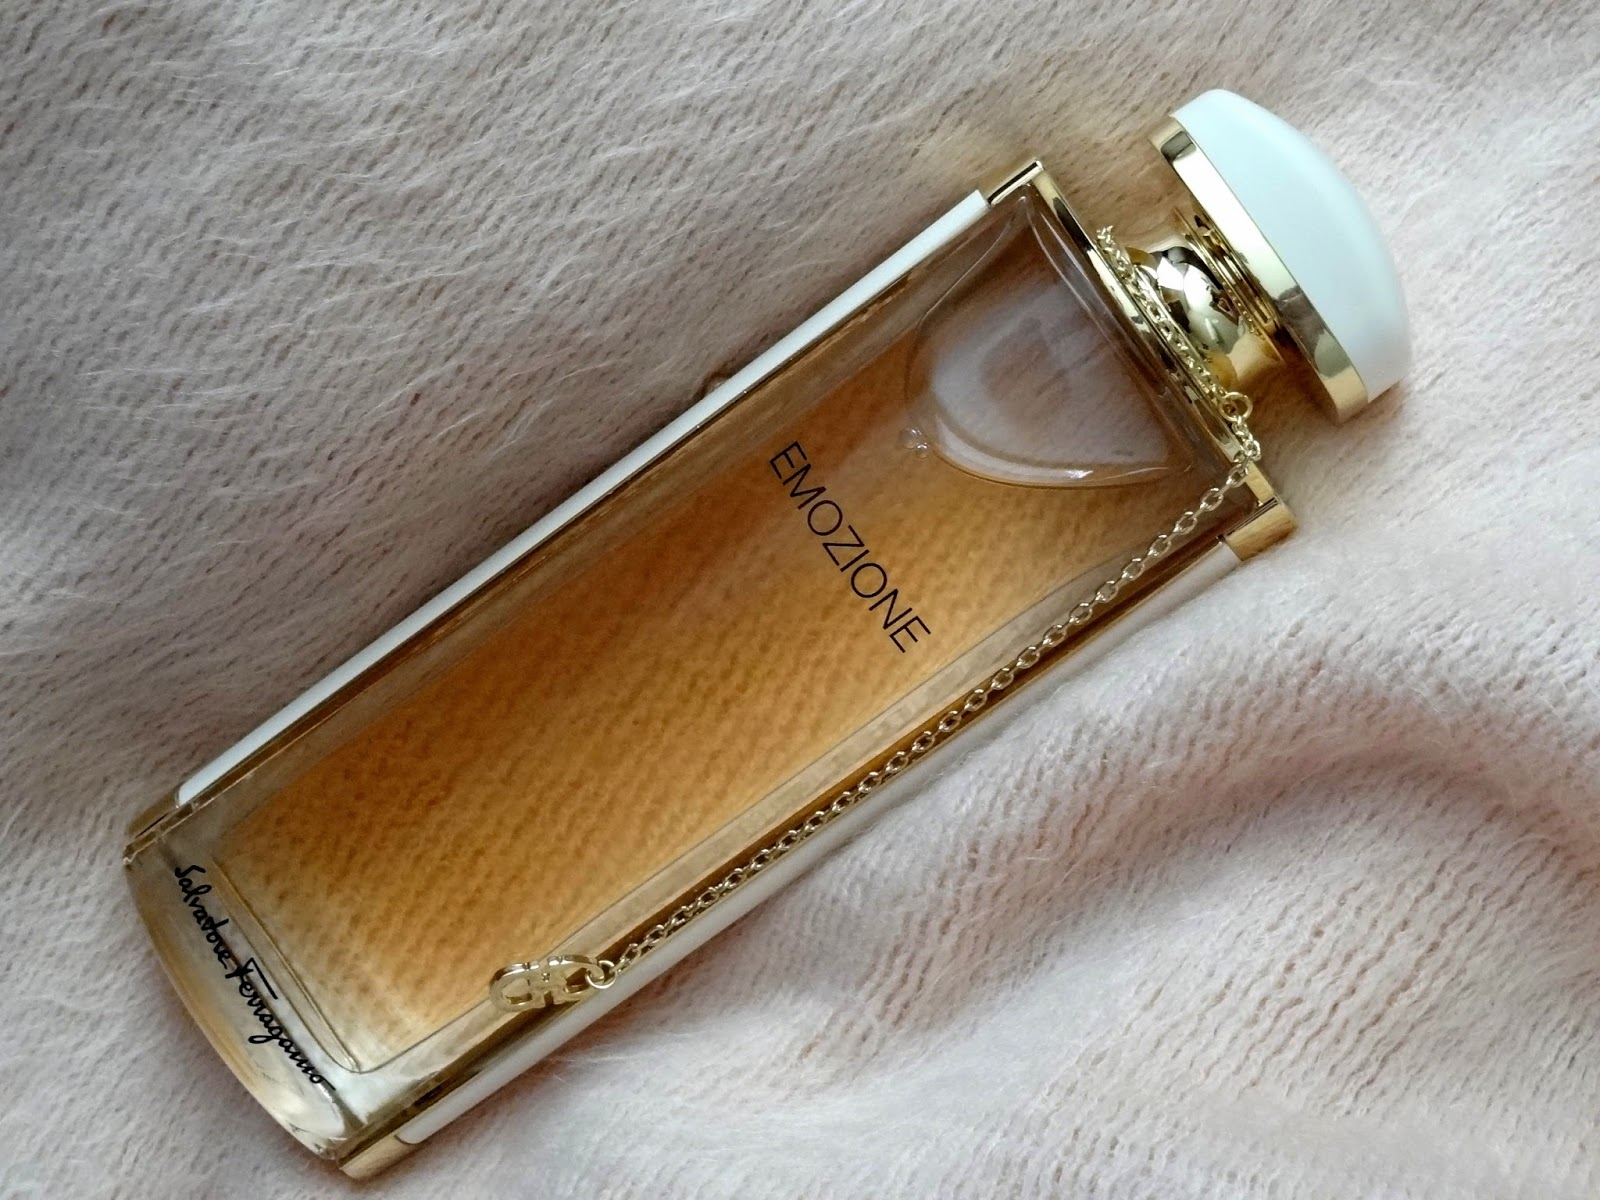 ferragamo emozione body lotion